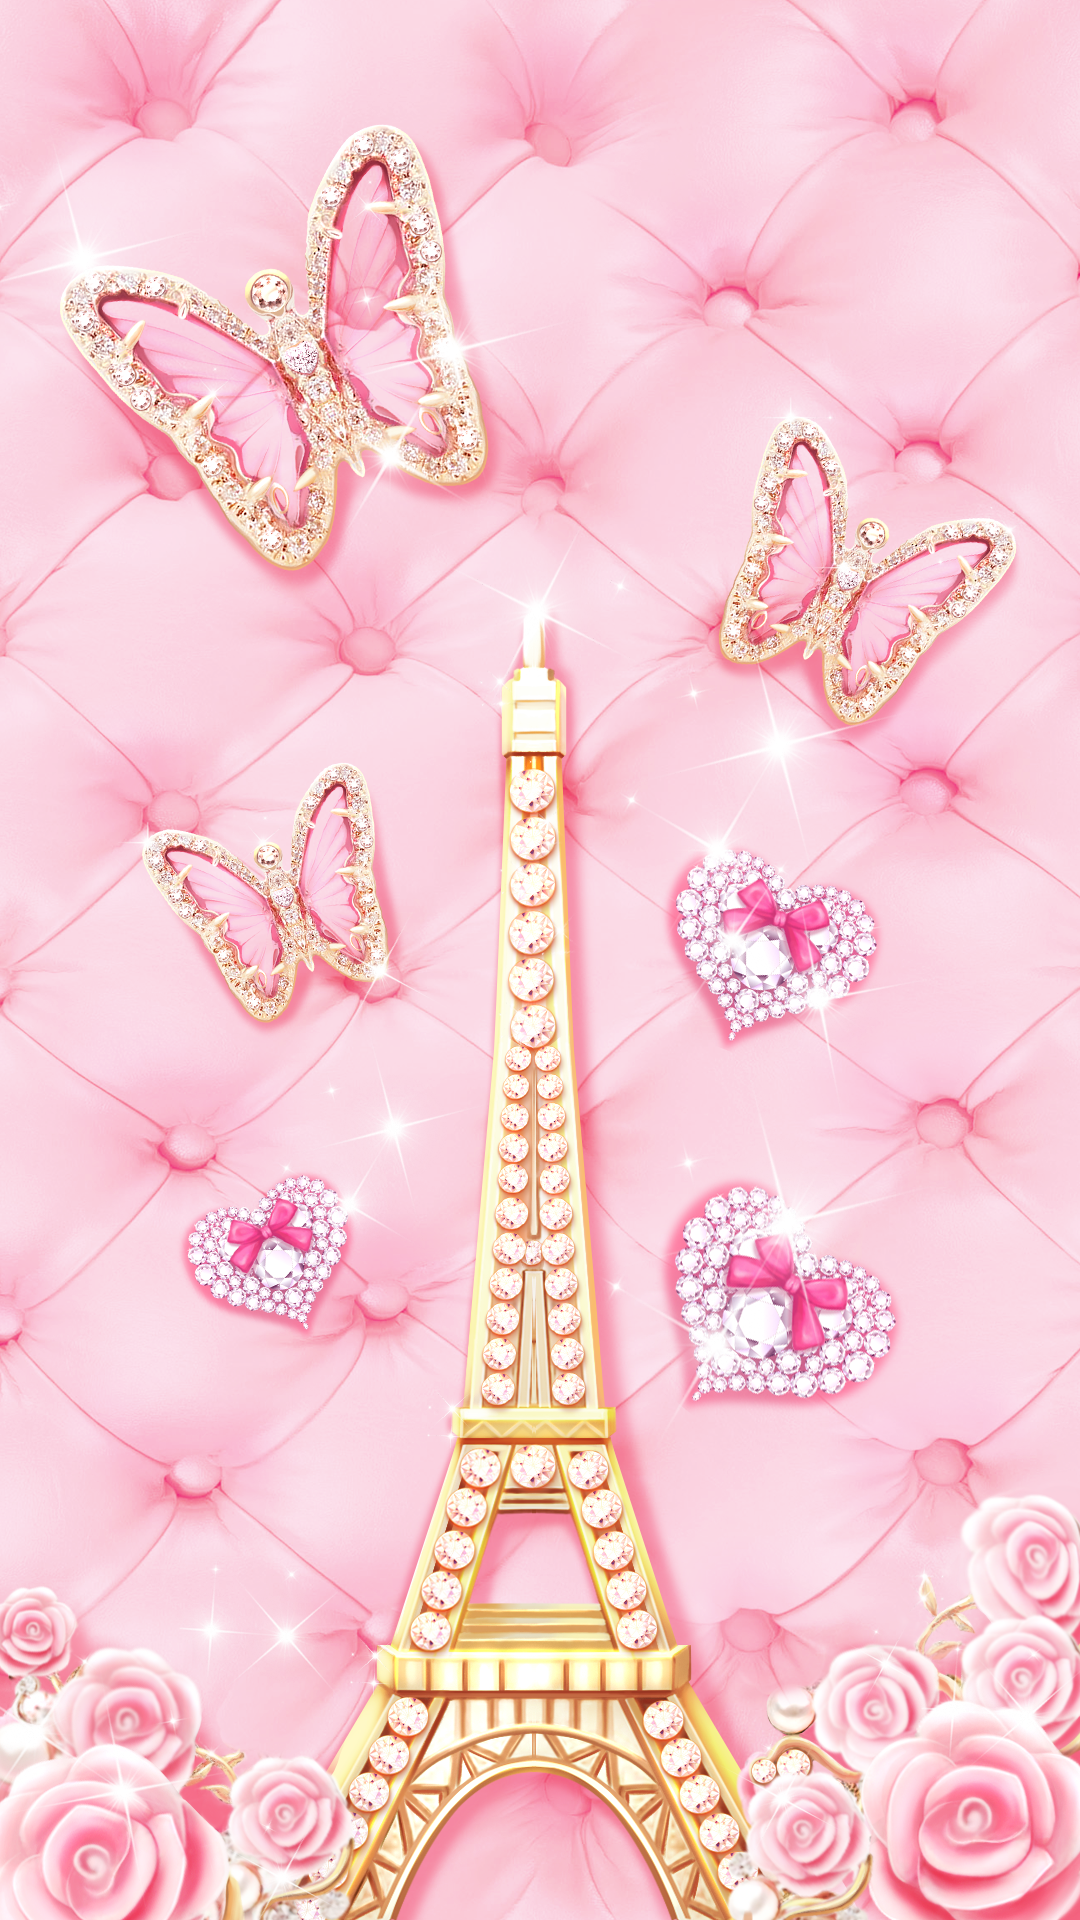 Cute Pink Wallpaper Posted By Zoey Anderson